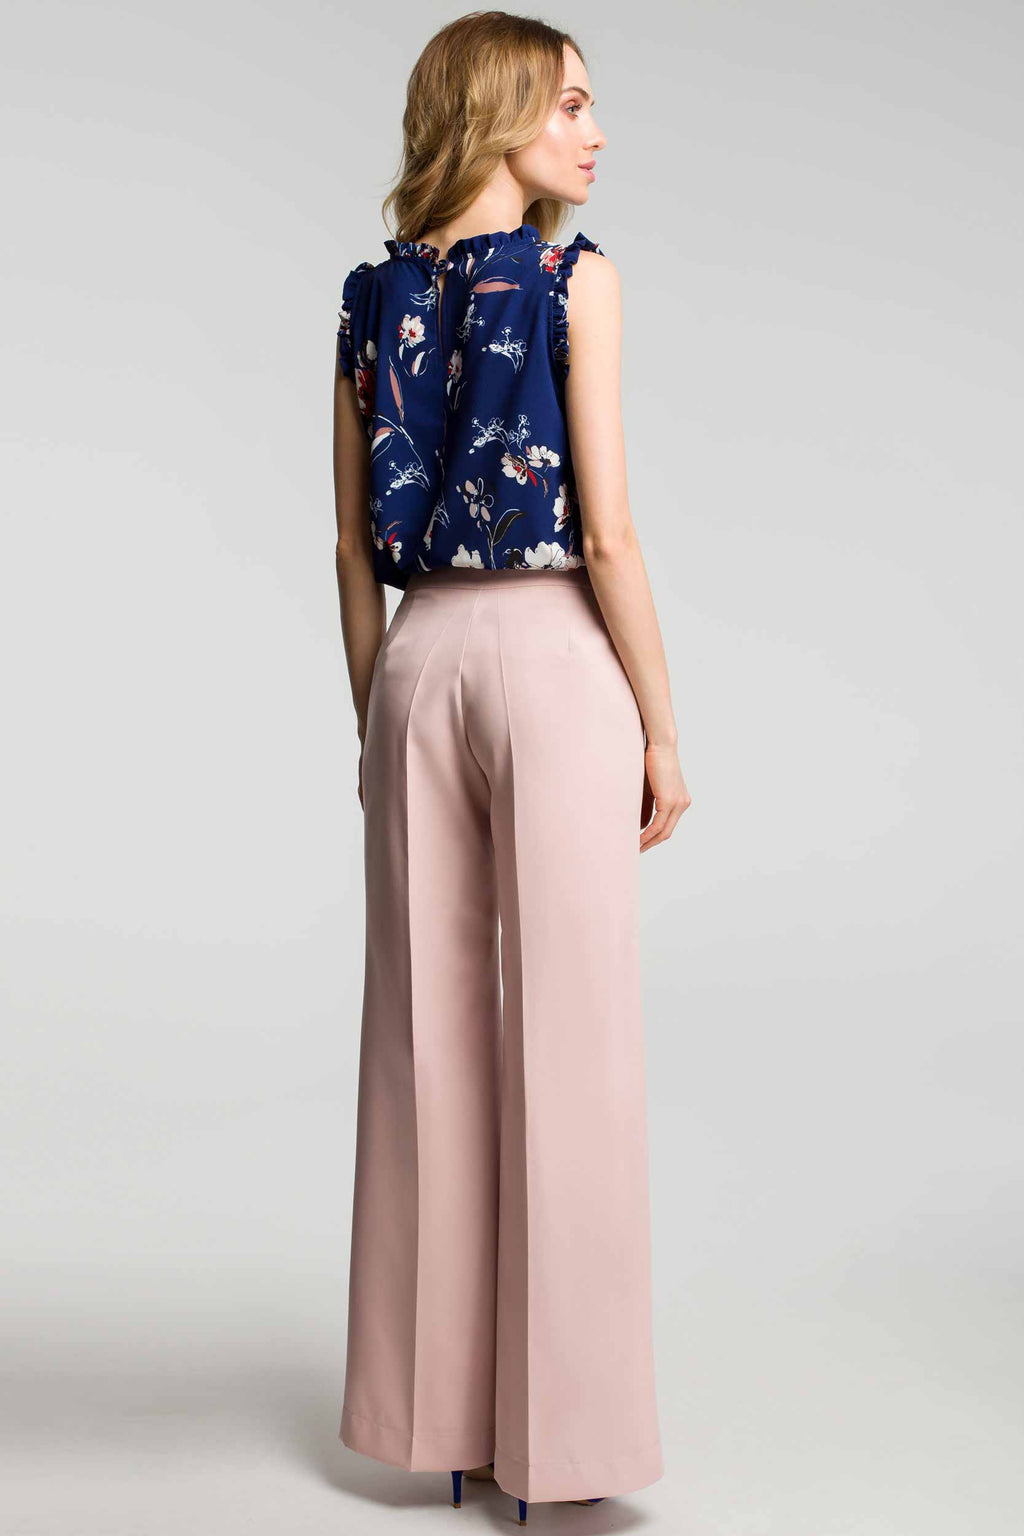 Creased Wide Leg Powder Pink Trousers - So Chic Boutique